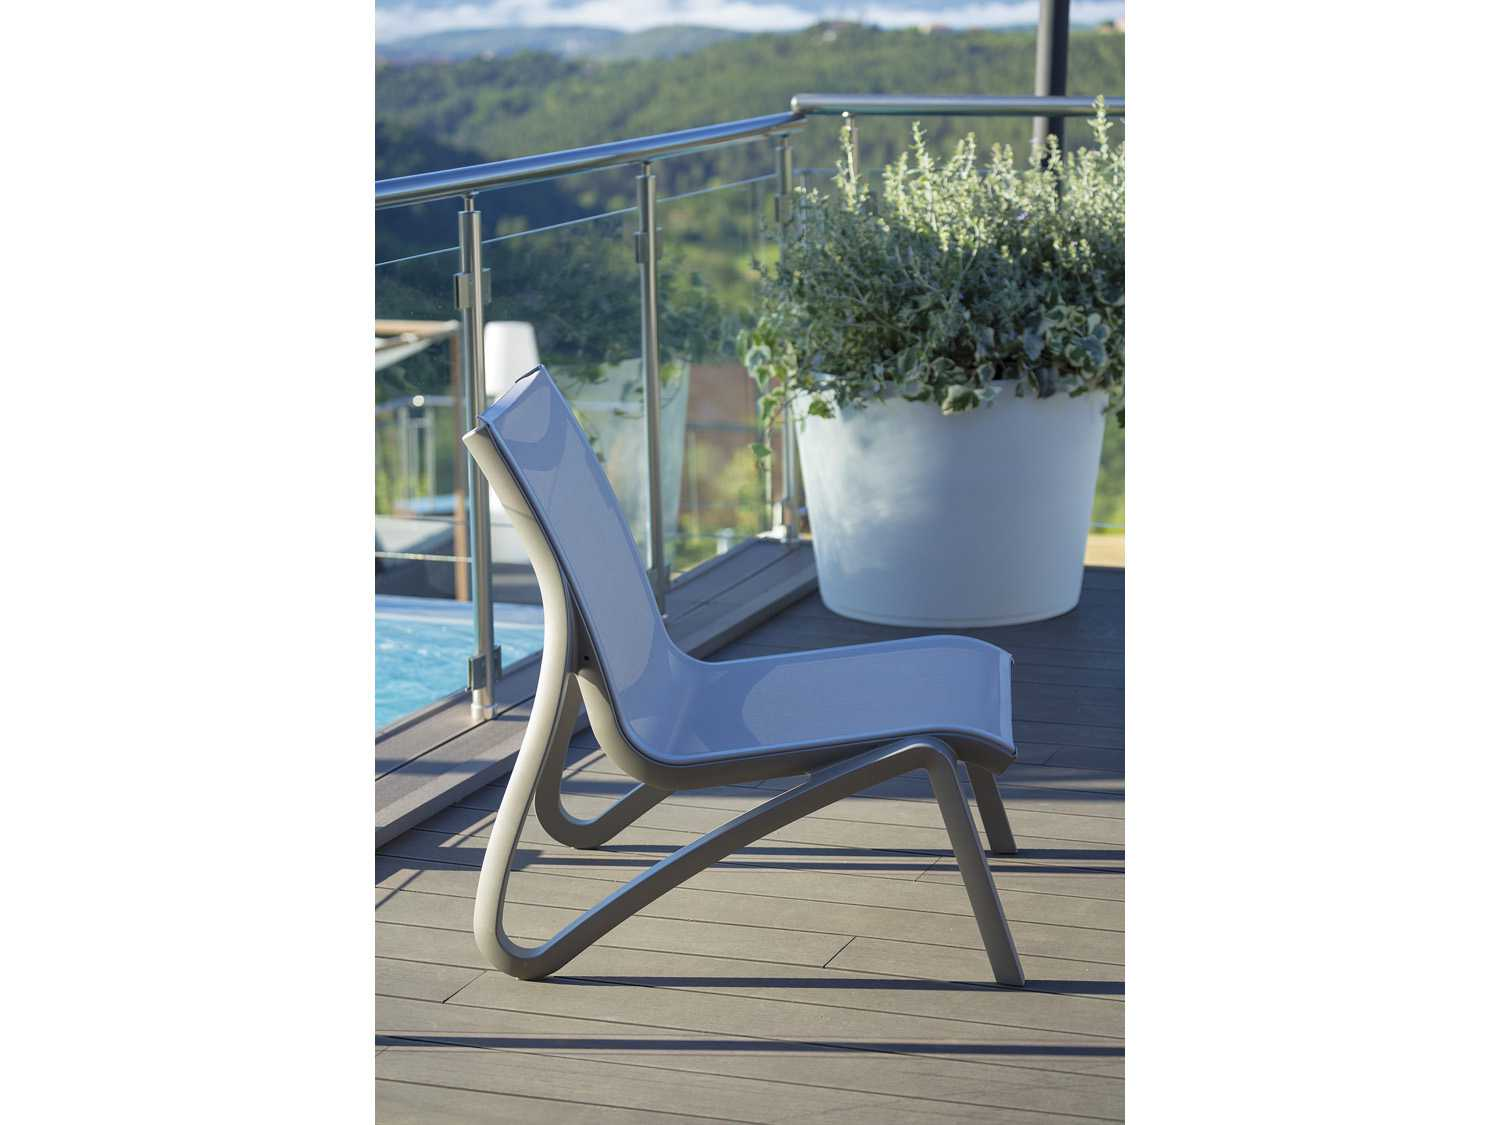 grosfillex madras lounge chairs gas fire pit and chair set sunset sold in 4 us001289